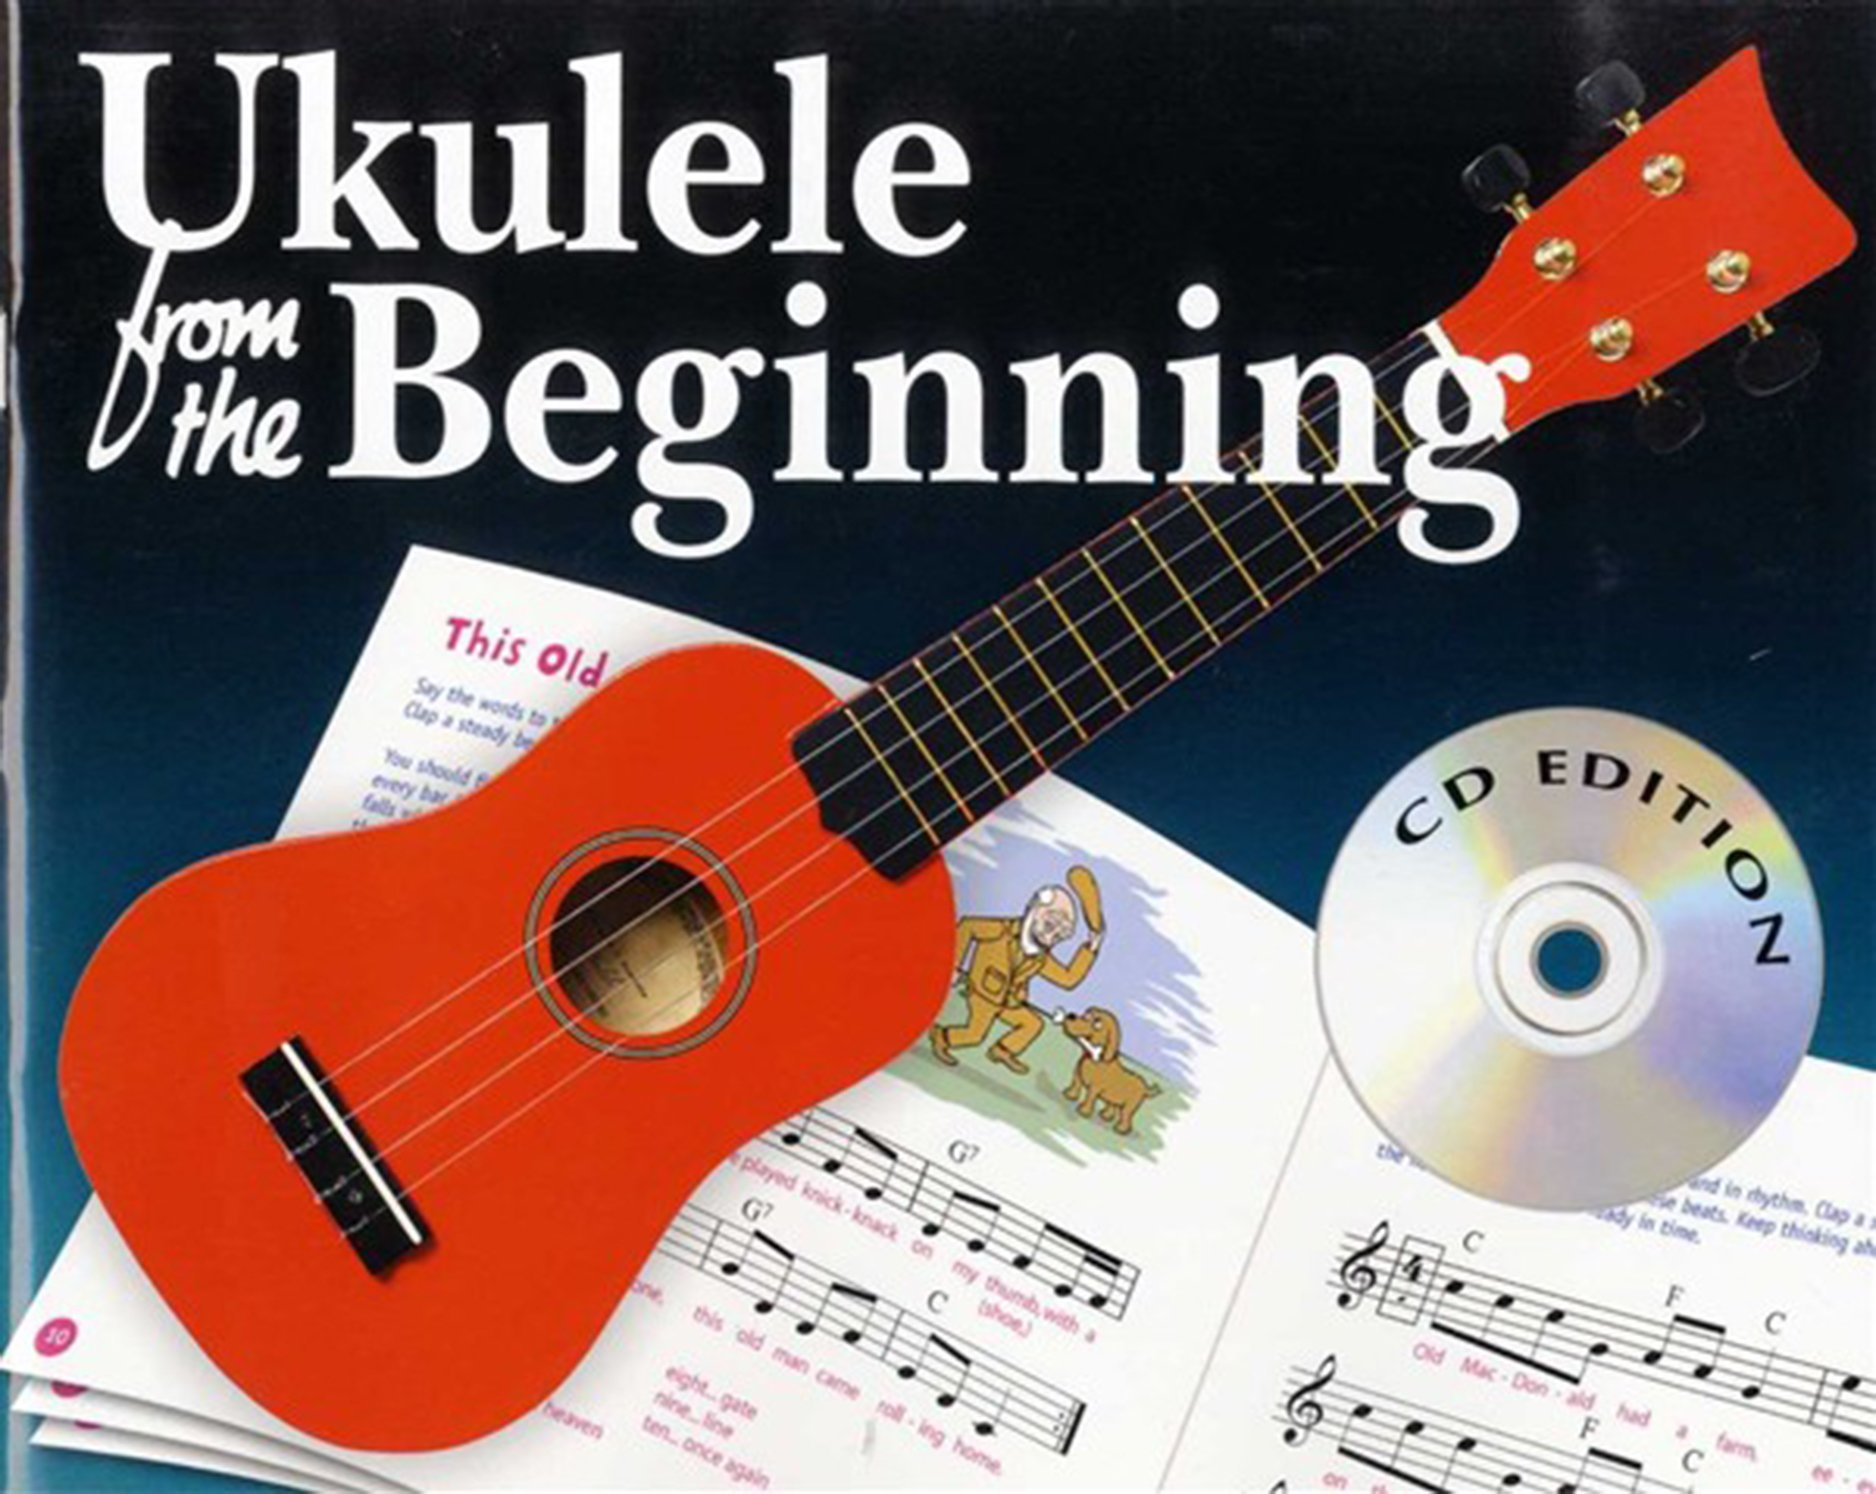 Image of Chester Music Ukulele Book from the Beginning